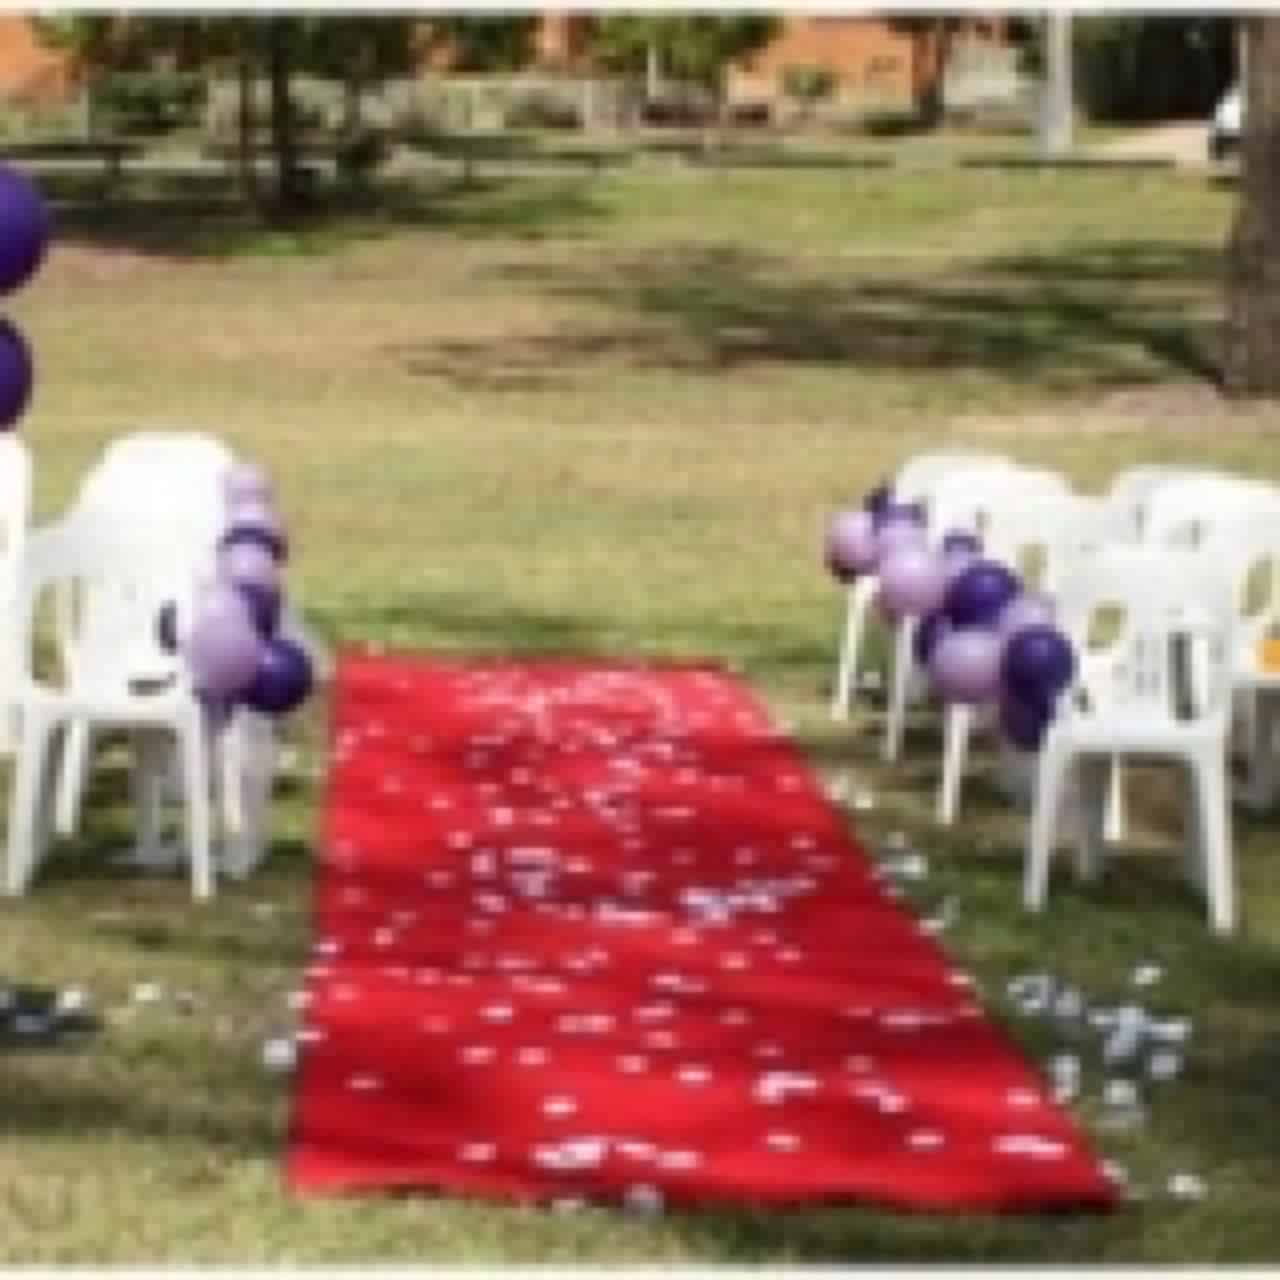 124 Party and Event Hire Business for sale 0412 179 306